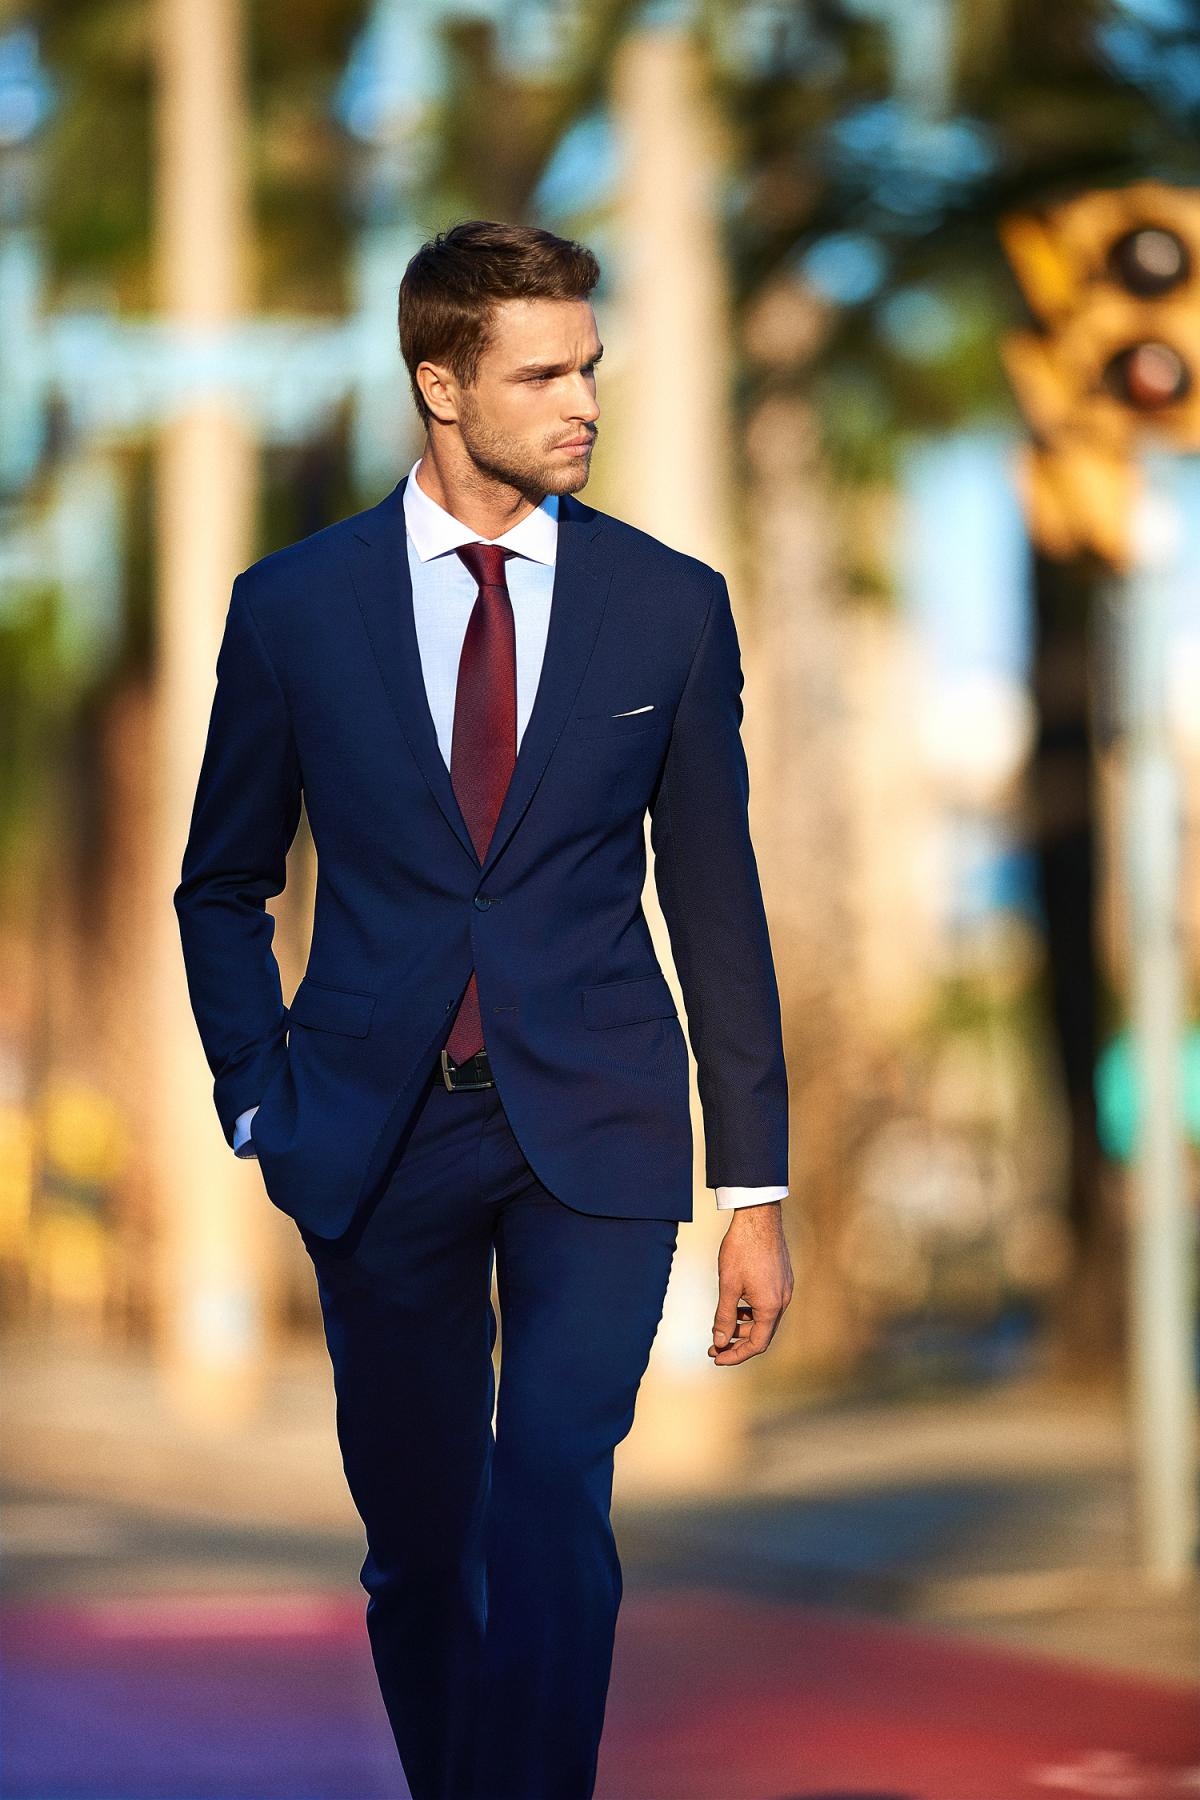 Another one classic business style - dark blue suit, white shirt and red tie